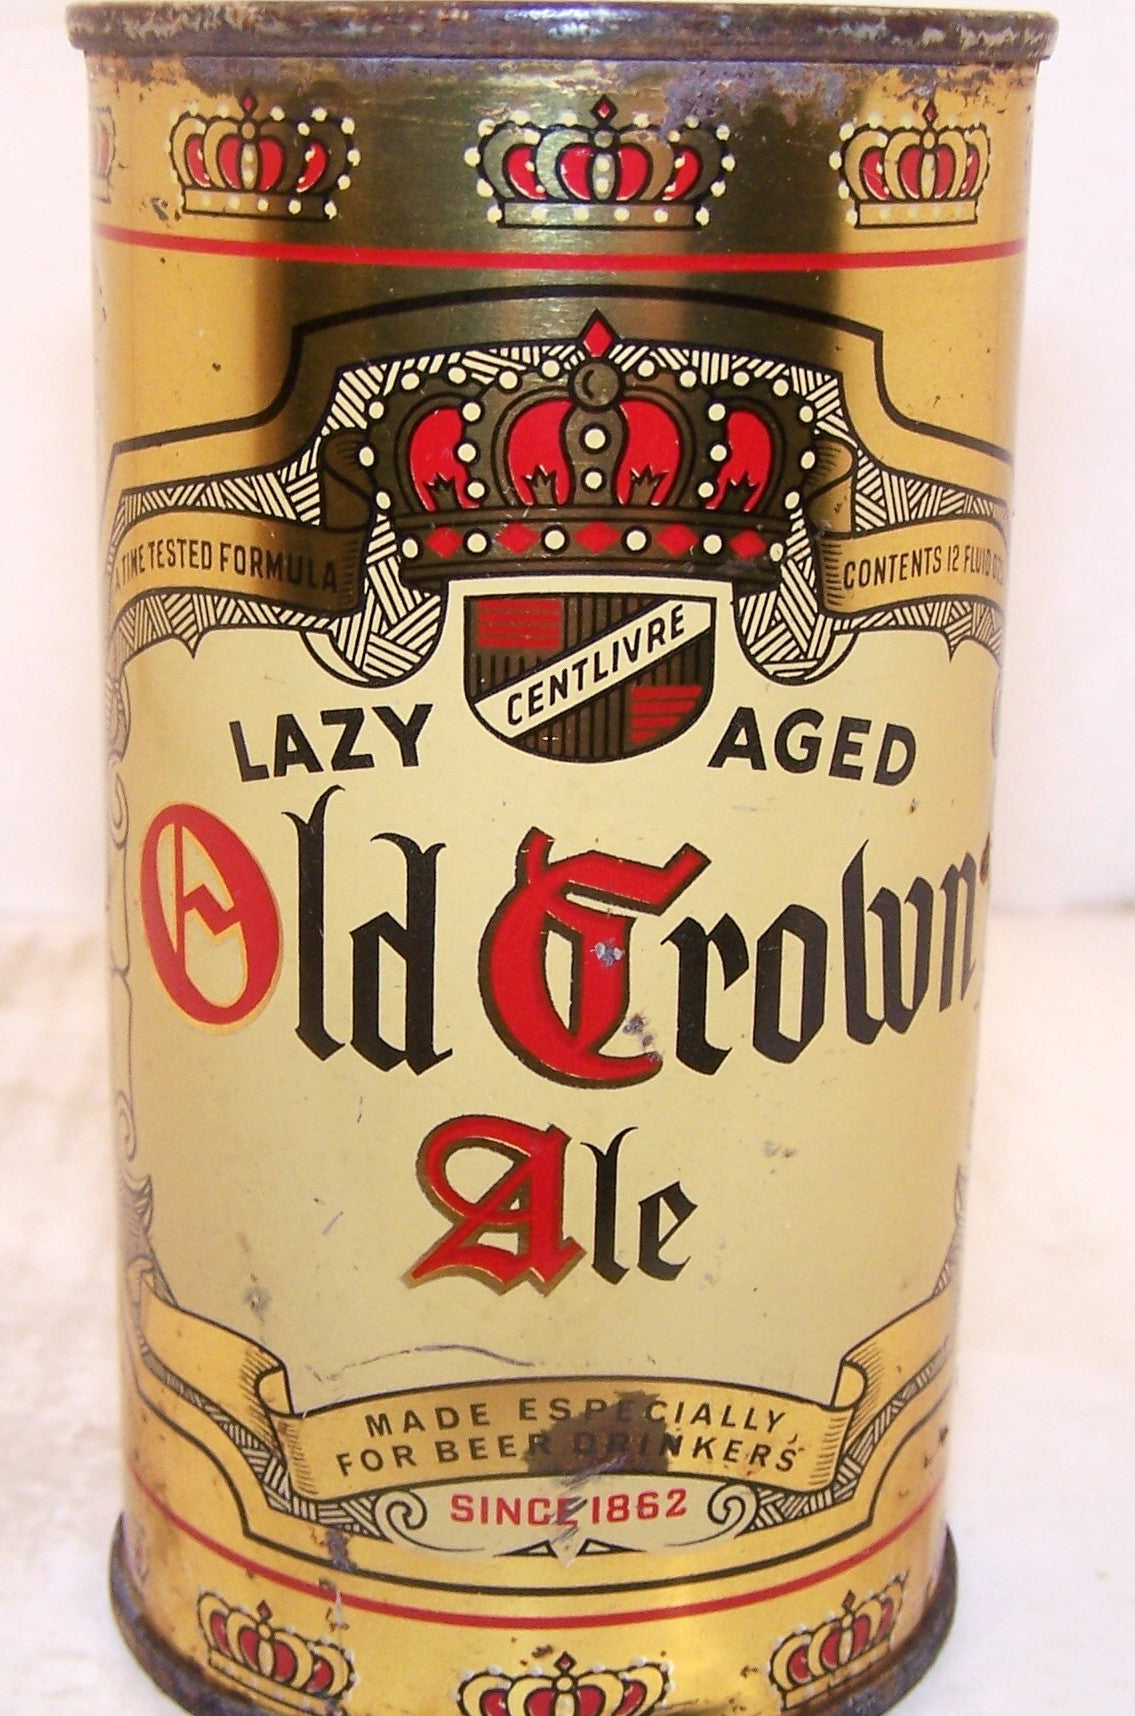 Old Crown Ale Lazy Aged, Lilek page # 588, Grade 1/1- Sold on 4/12/15